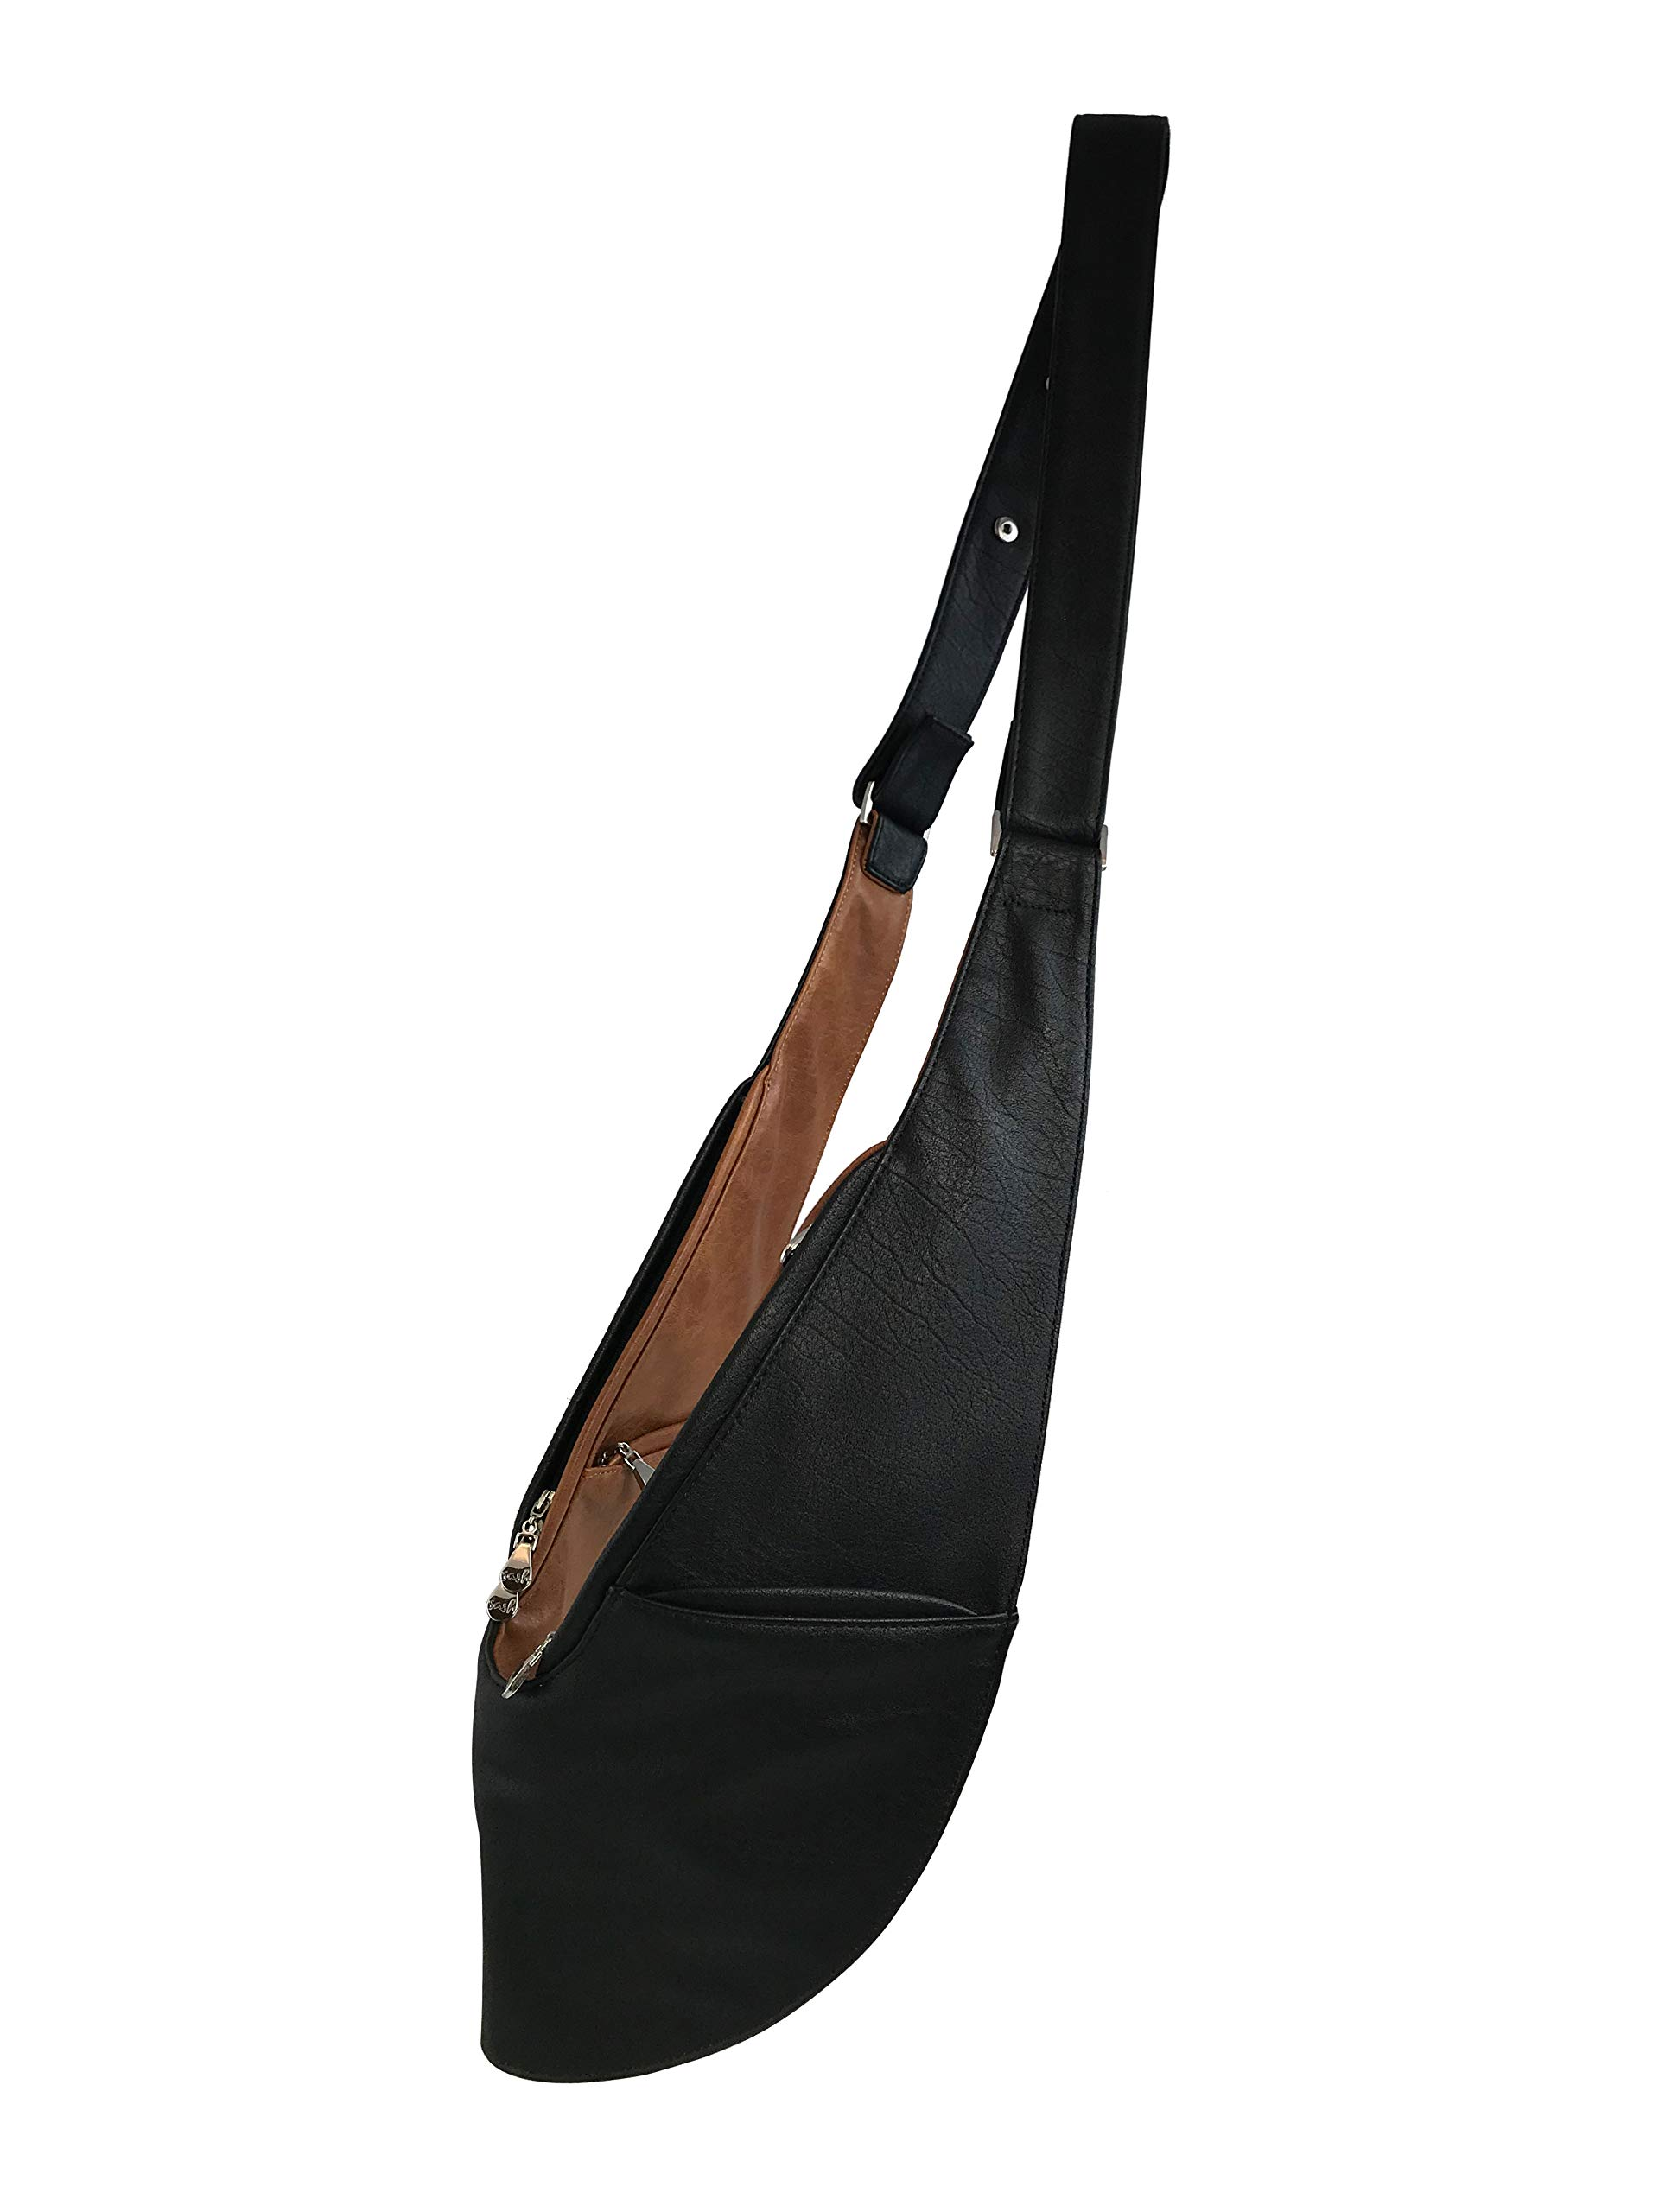 Womens Crossbody Bag by SASH - Over The Shoulder Cross Body Purse (Black/Caramel Faux Leather)